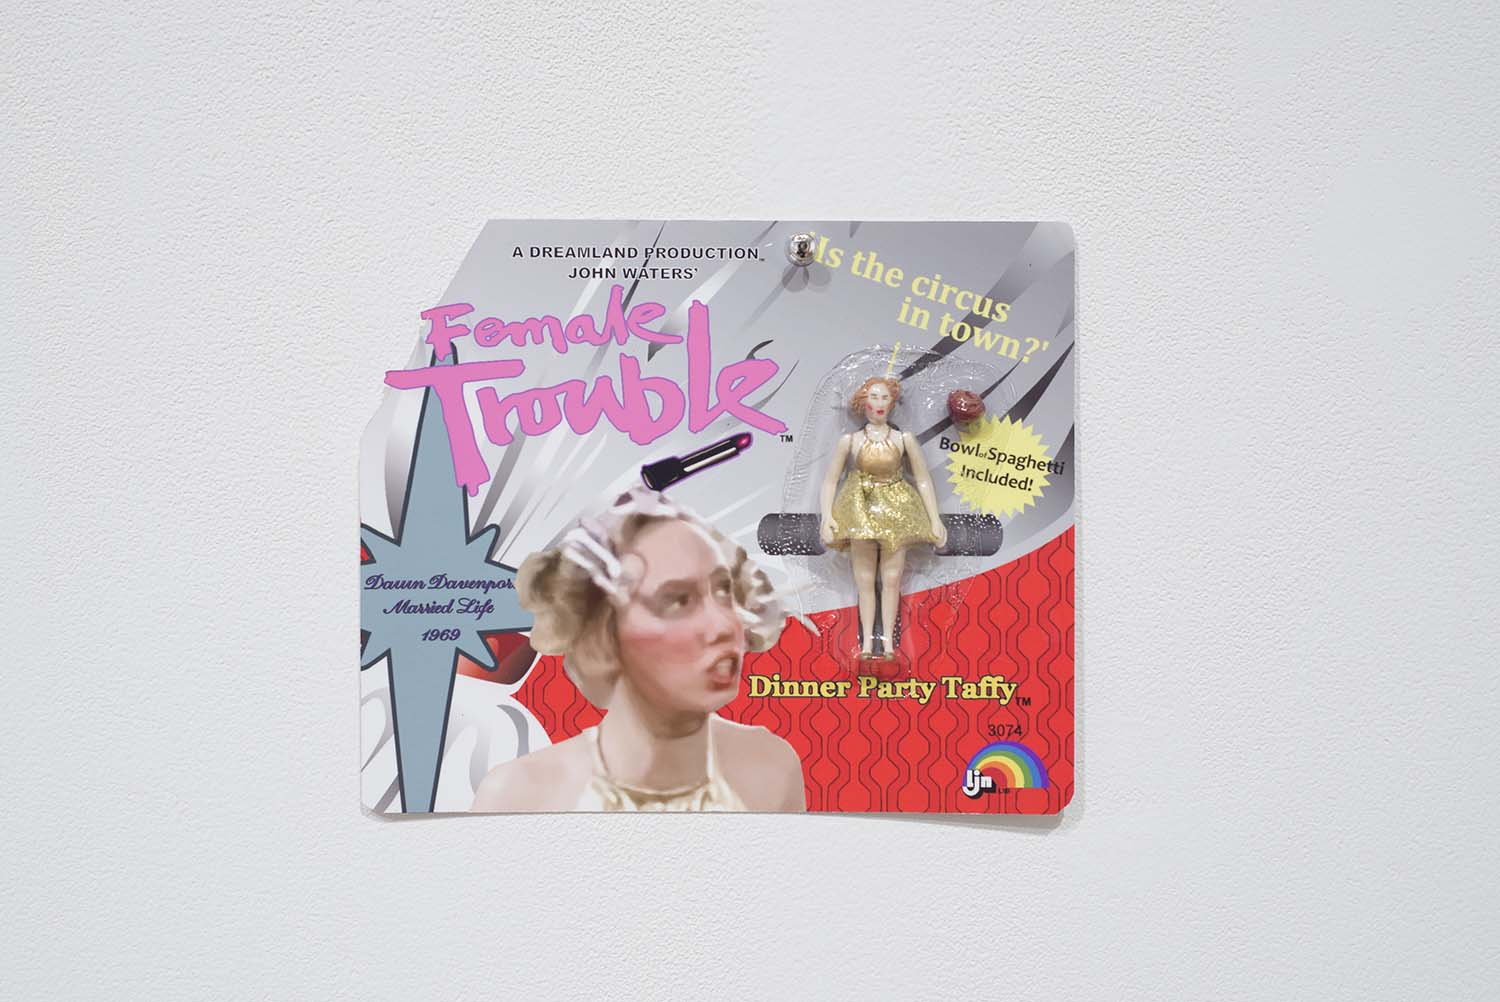 little doll in a vintage package